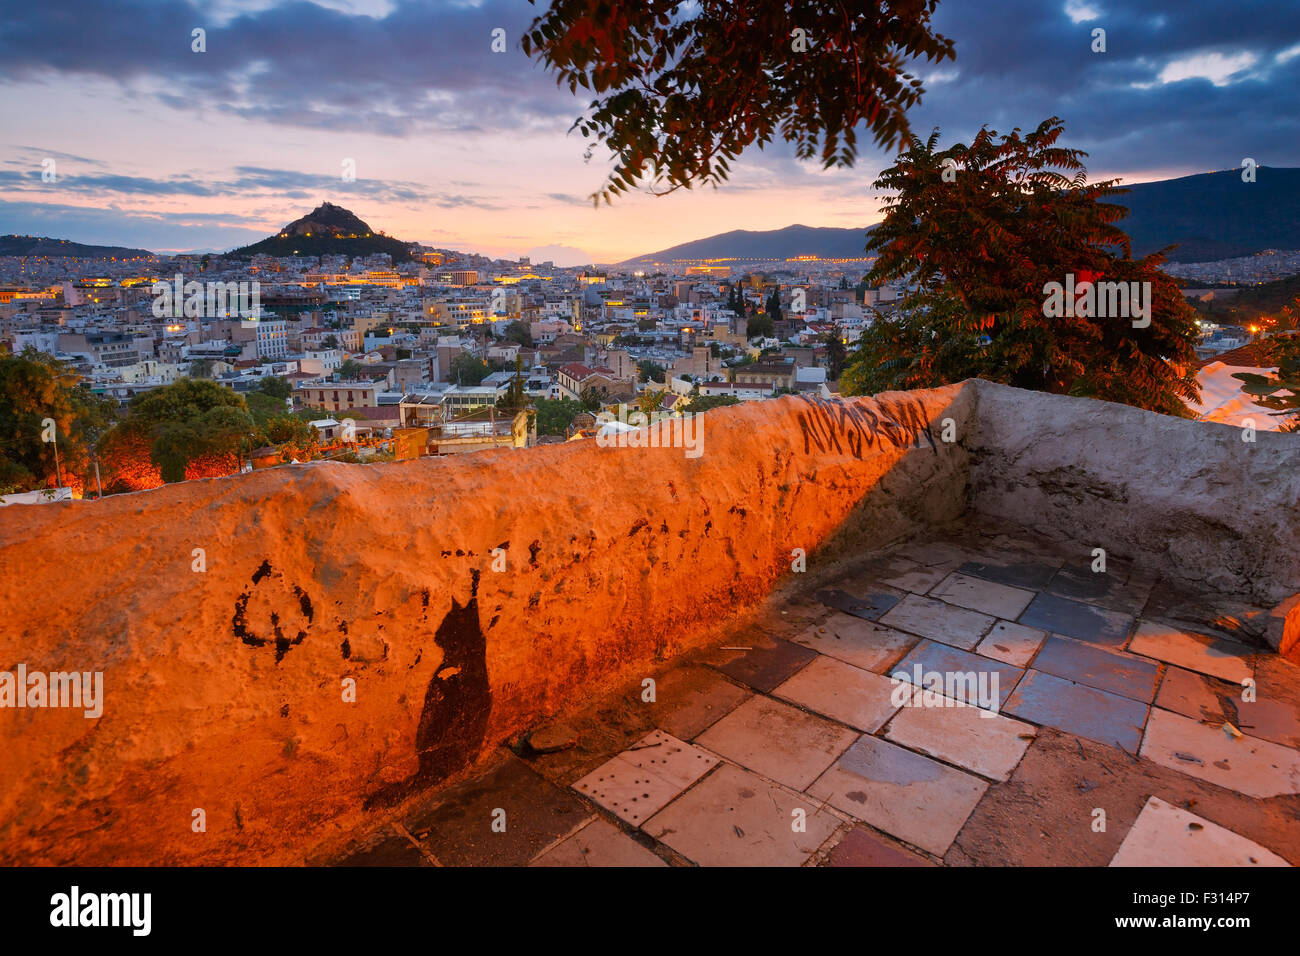 View of Athens dominated by Lycabettus hill. Image taken from Anafiotika in the old Town. - Stock Image